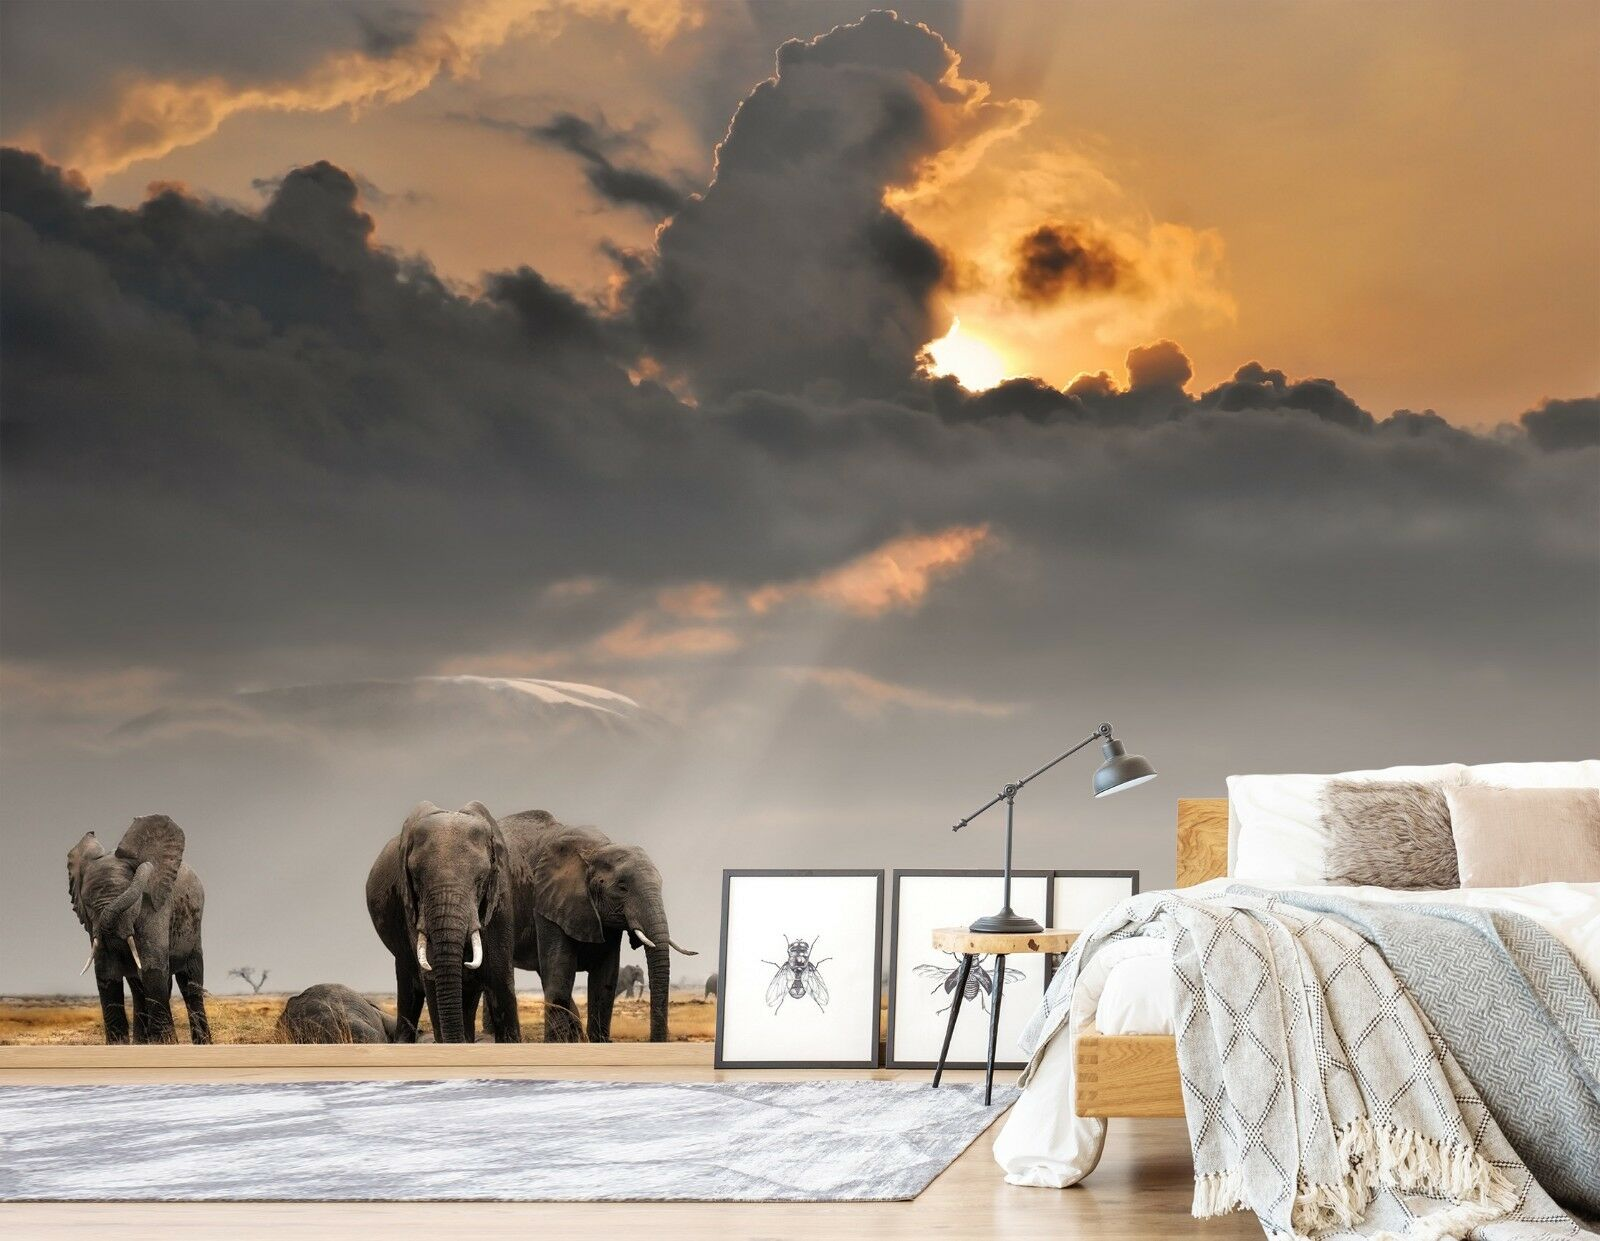 3D Elephant 7111 Wall Paper Print Wall Decal Deco Indoor Wall Murals US Summer